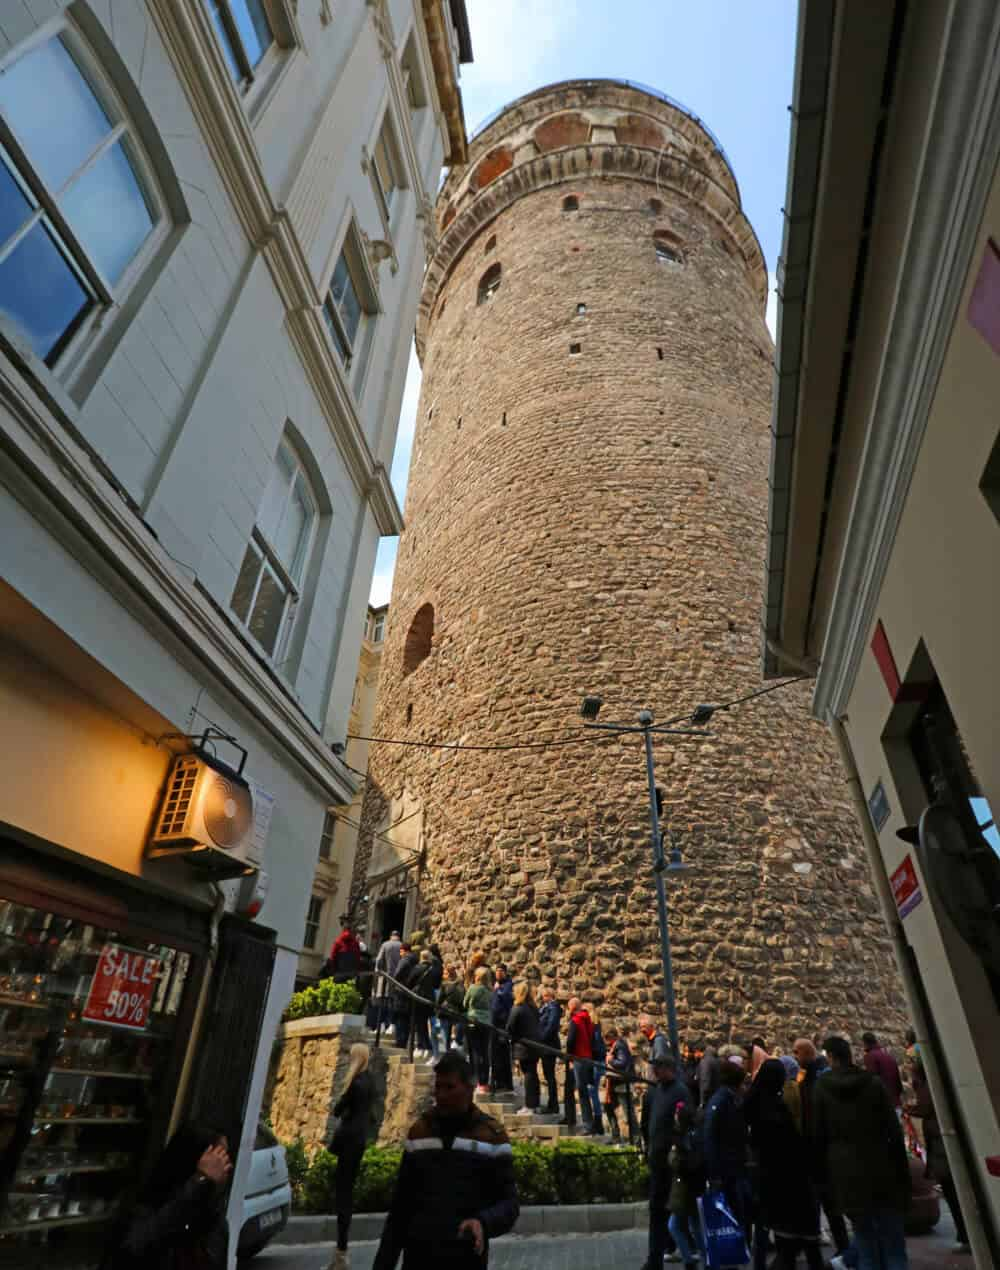 crowds at galata tower, Istanbul